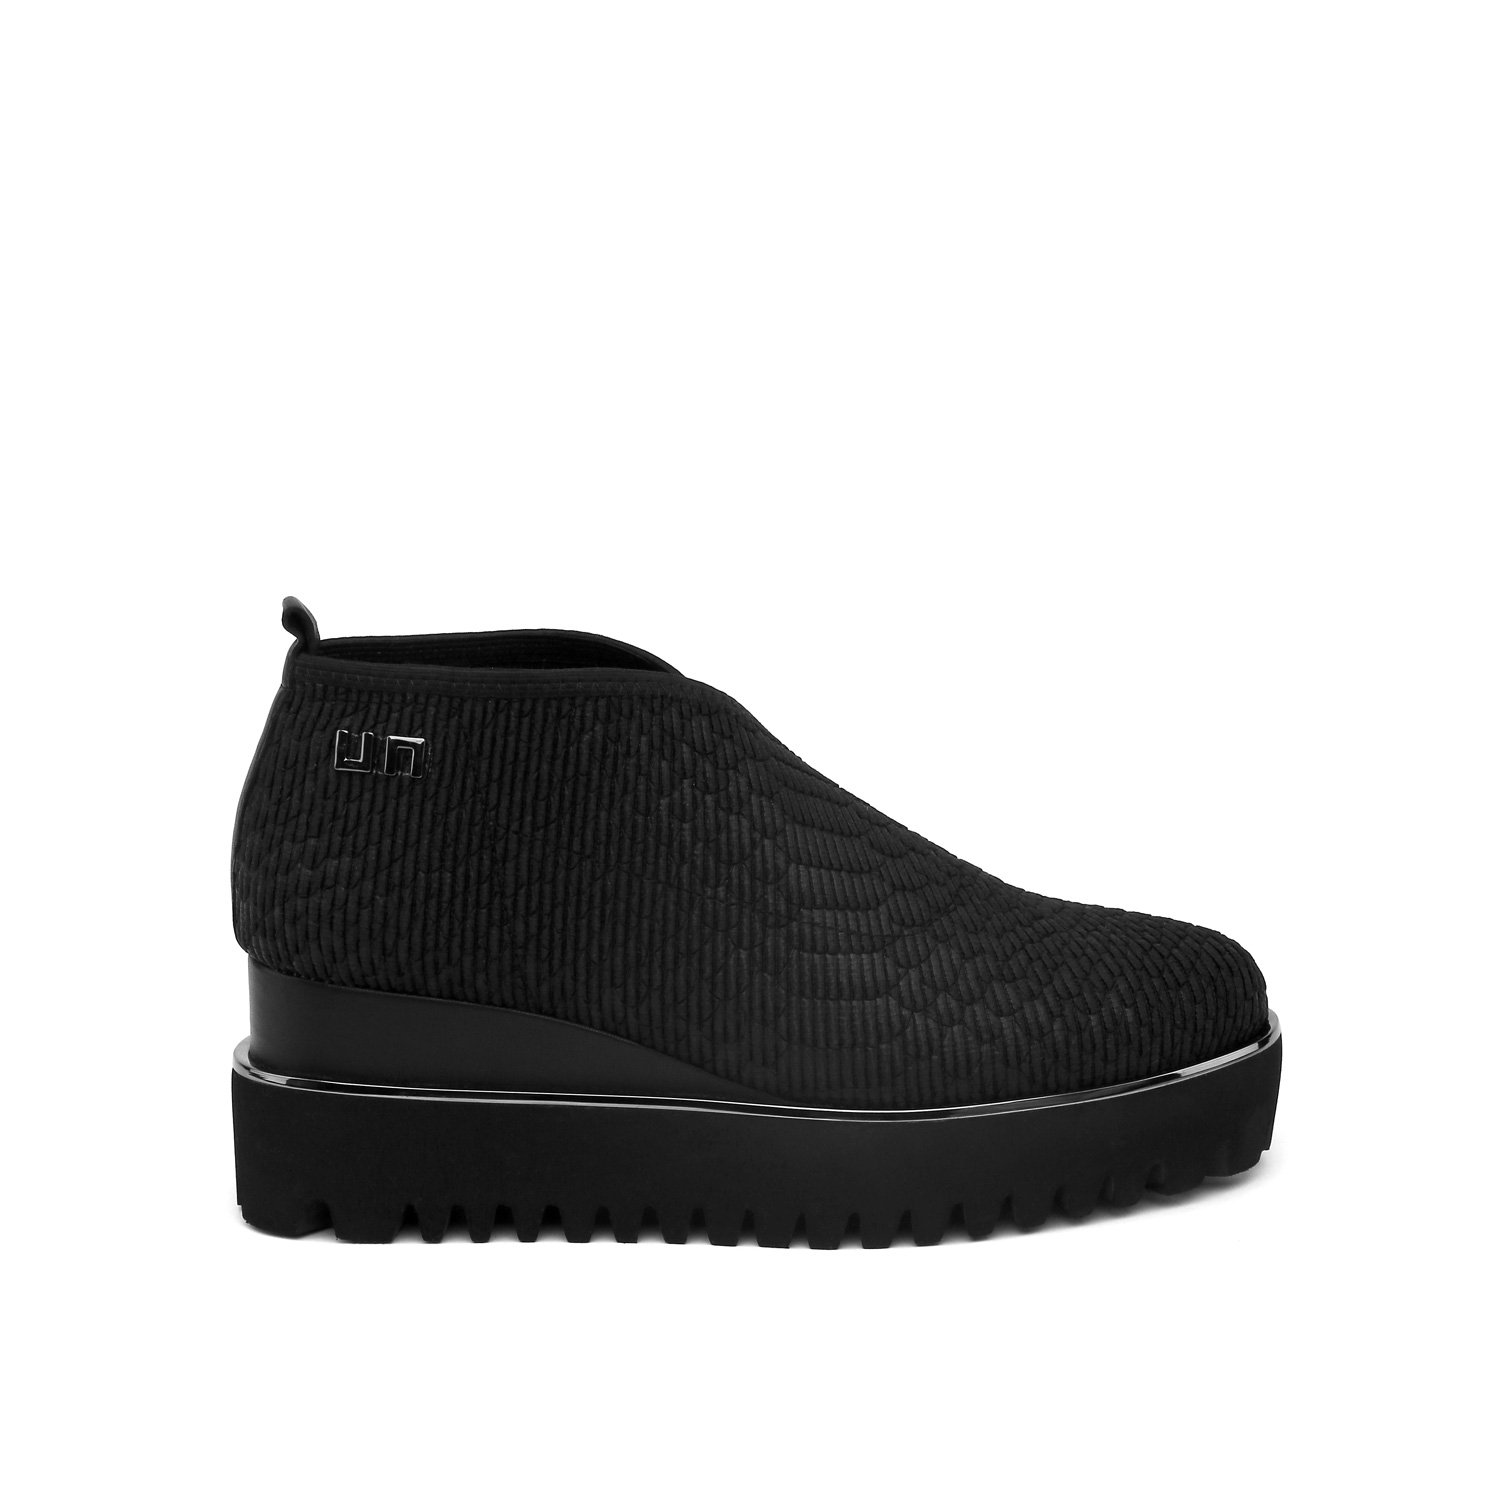 UNITED NUDE Women's Fold Casual EU Platform B075N67NJB 41 Medium EU Casual (10.5-11 US)|Black b23962